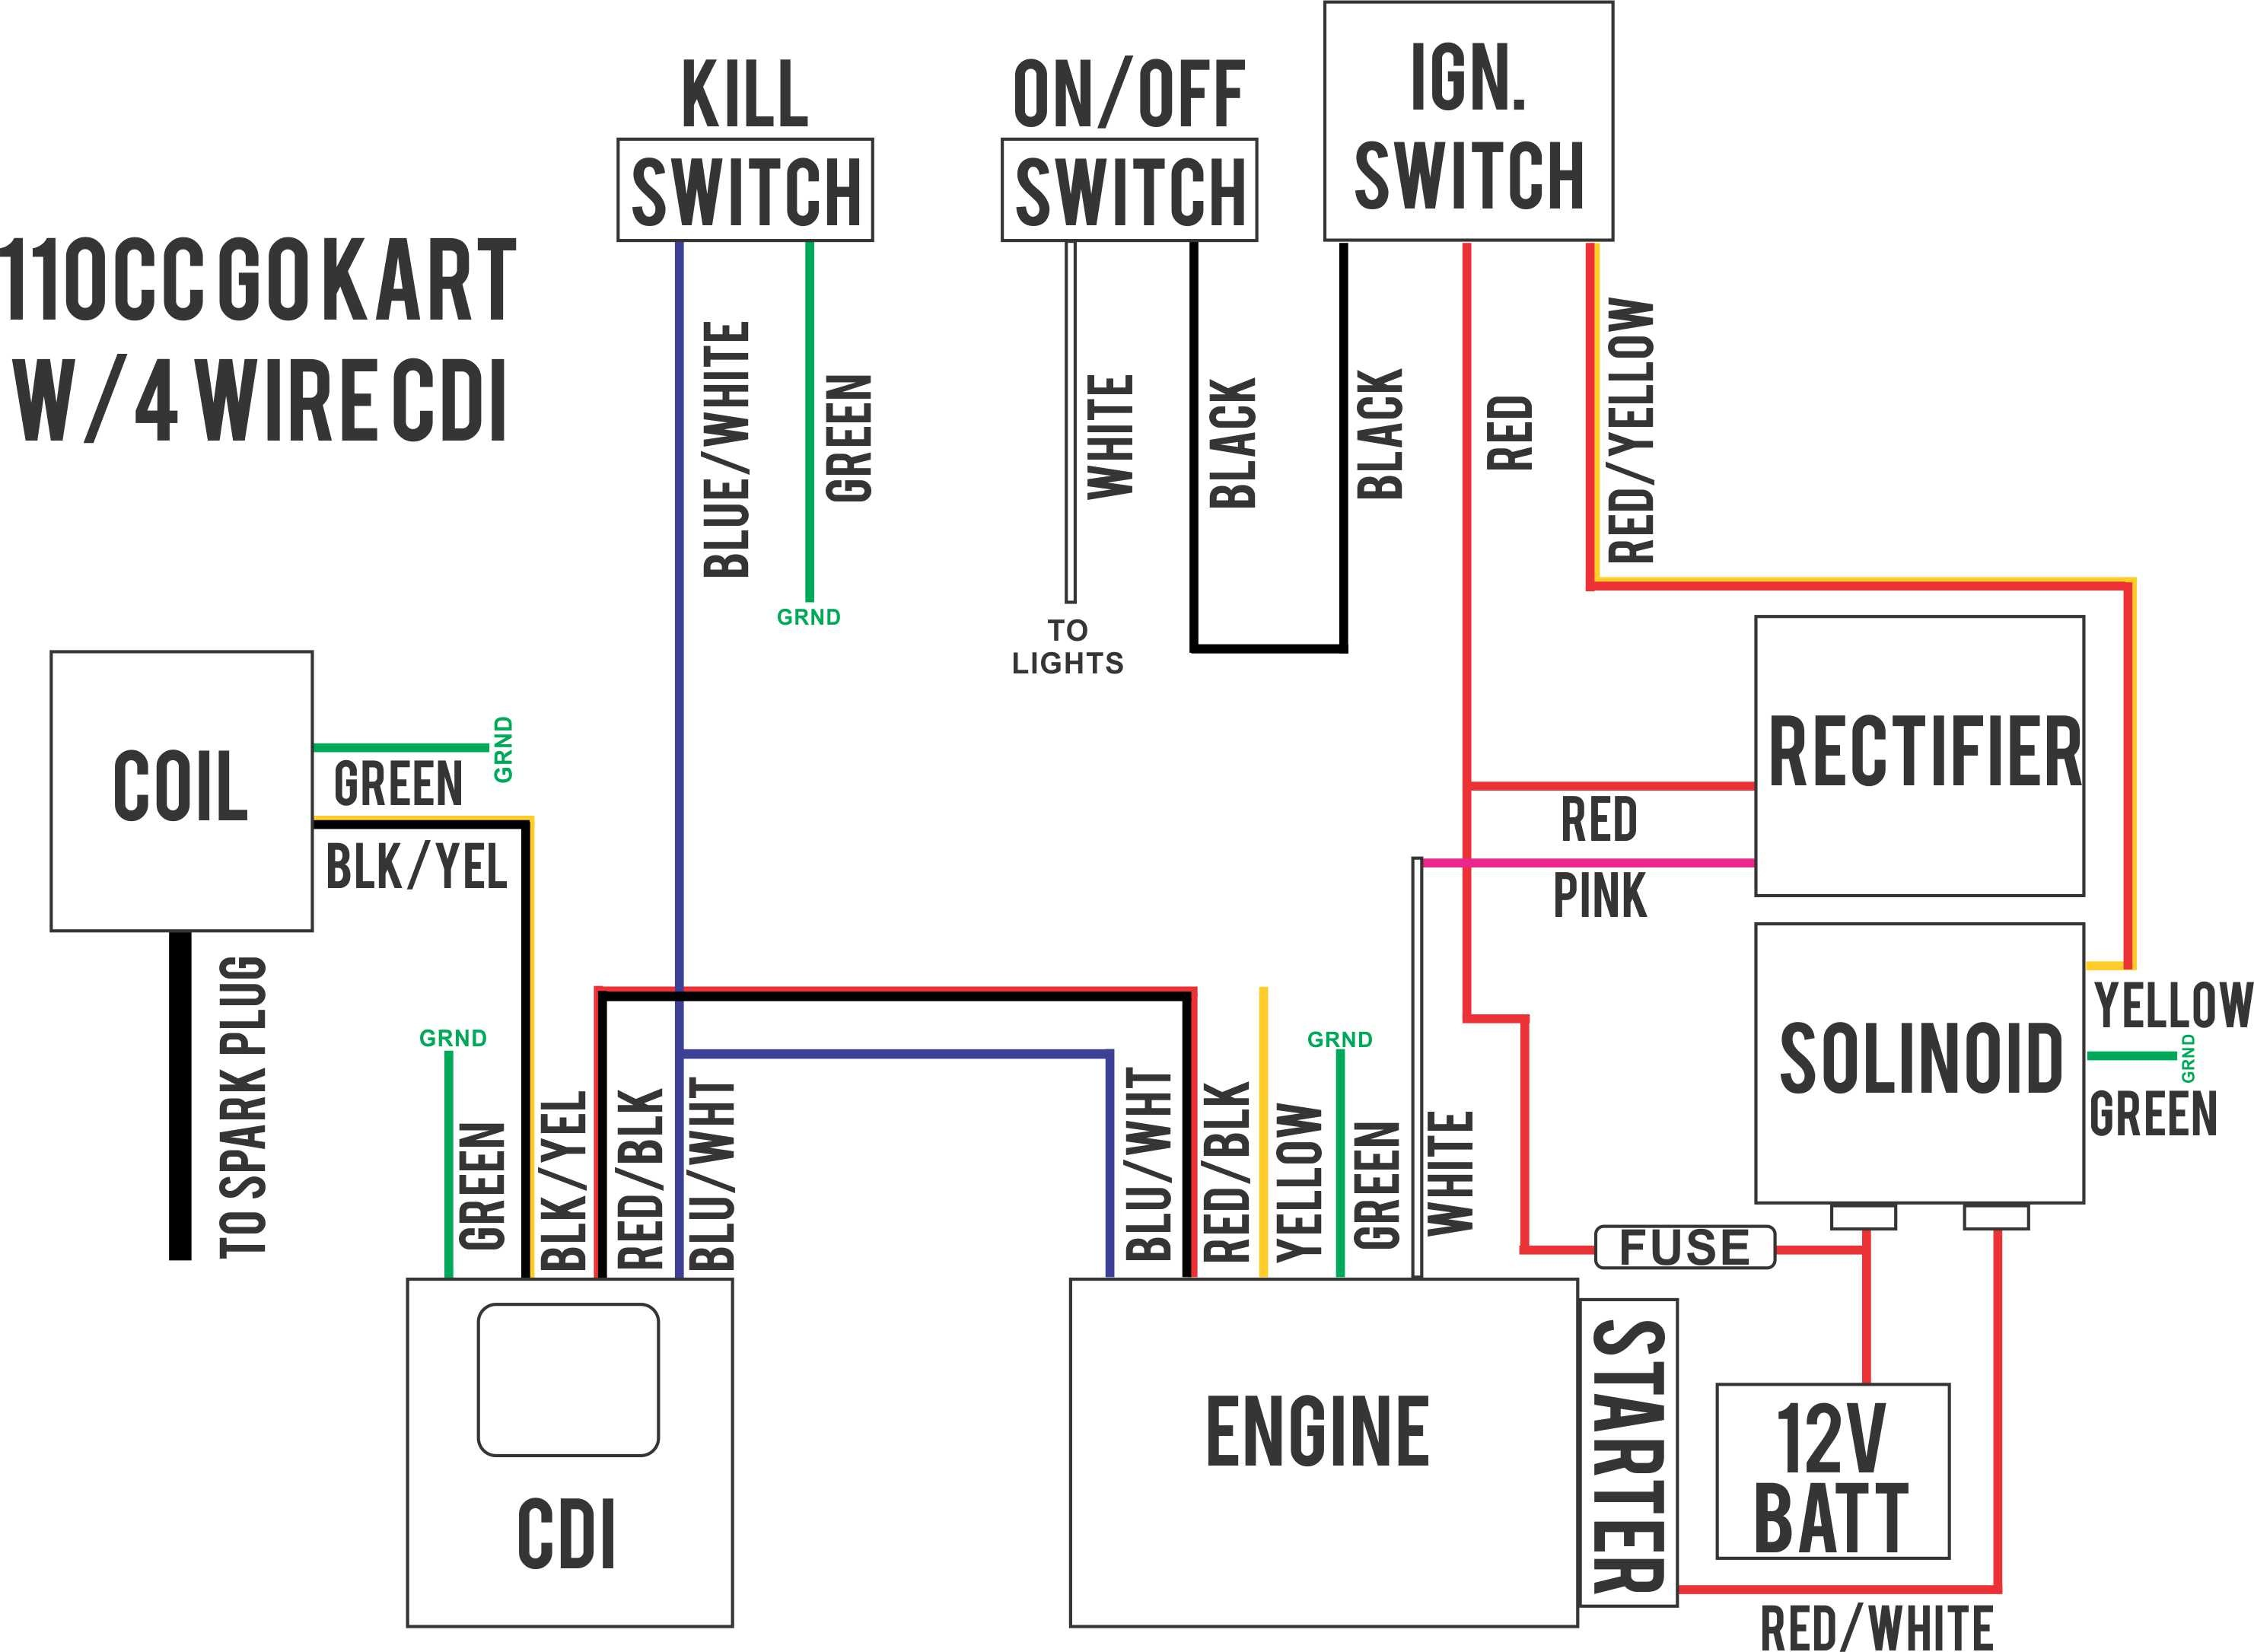 Lifan Wiring Diagram: Wiring Diagram For Lifan 15hp - Wiring Diagram Namerh:2.qfwg.ihr-segel-traum-by-stuis.de,Design